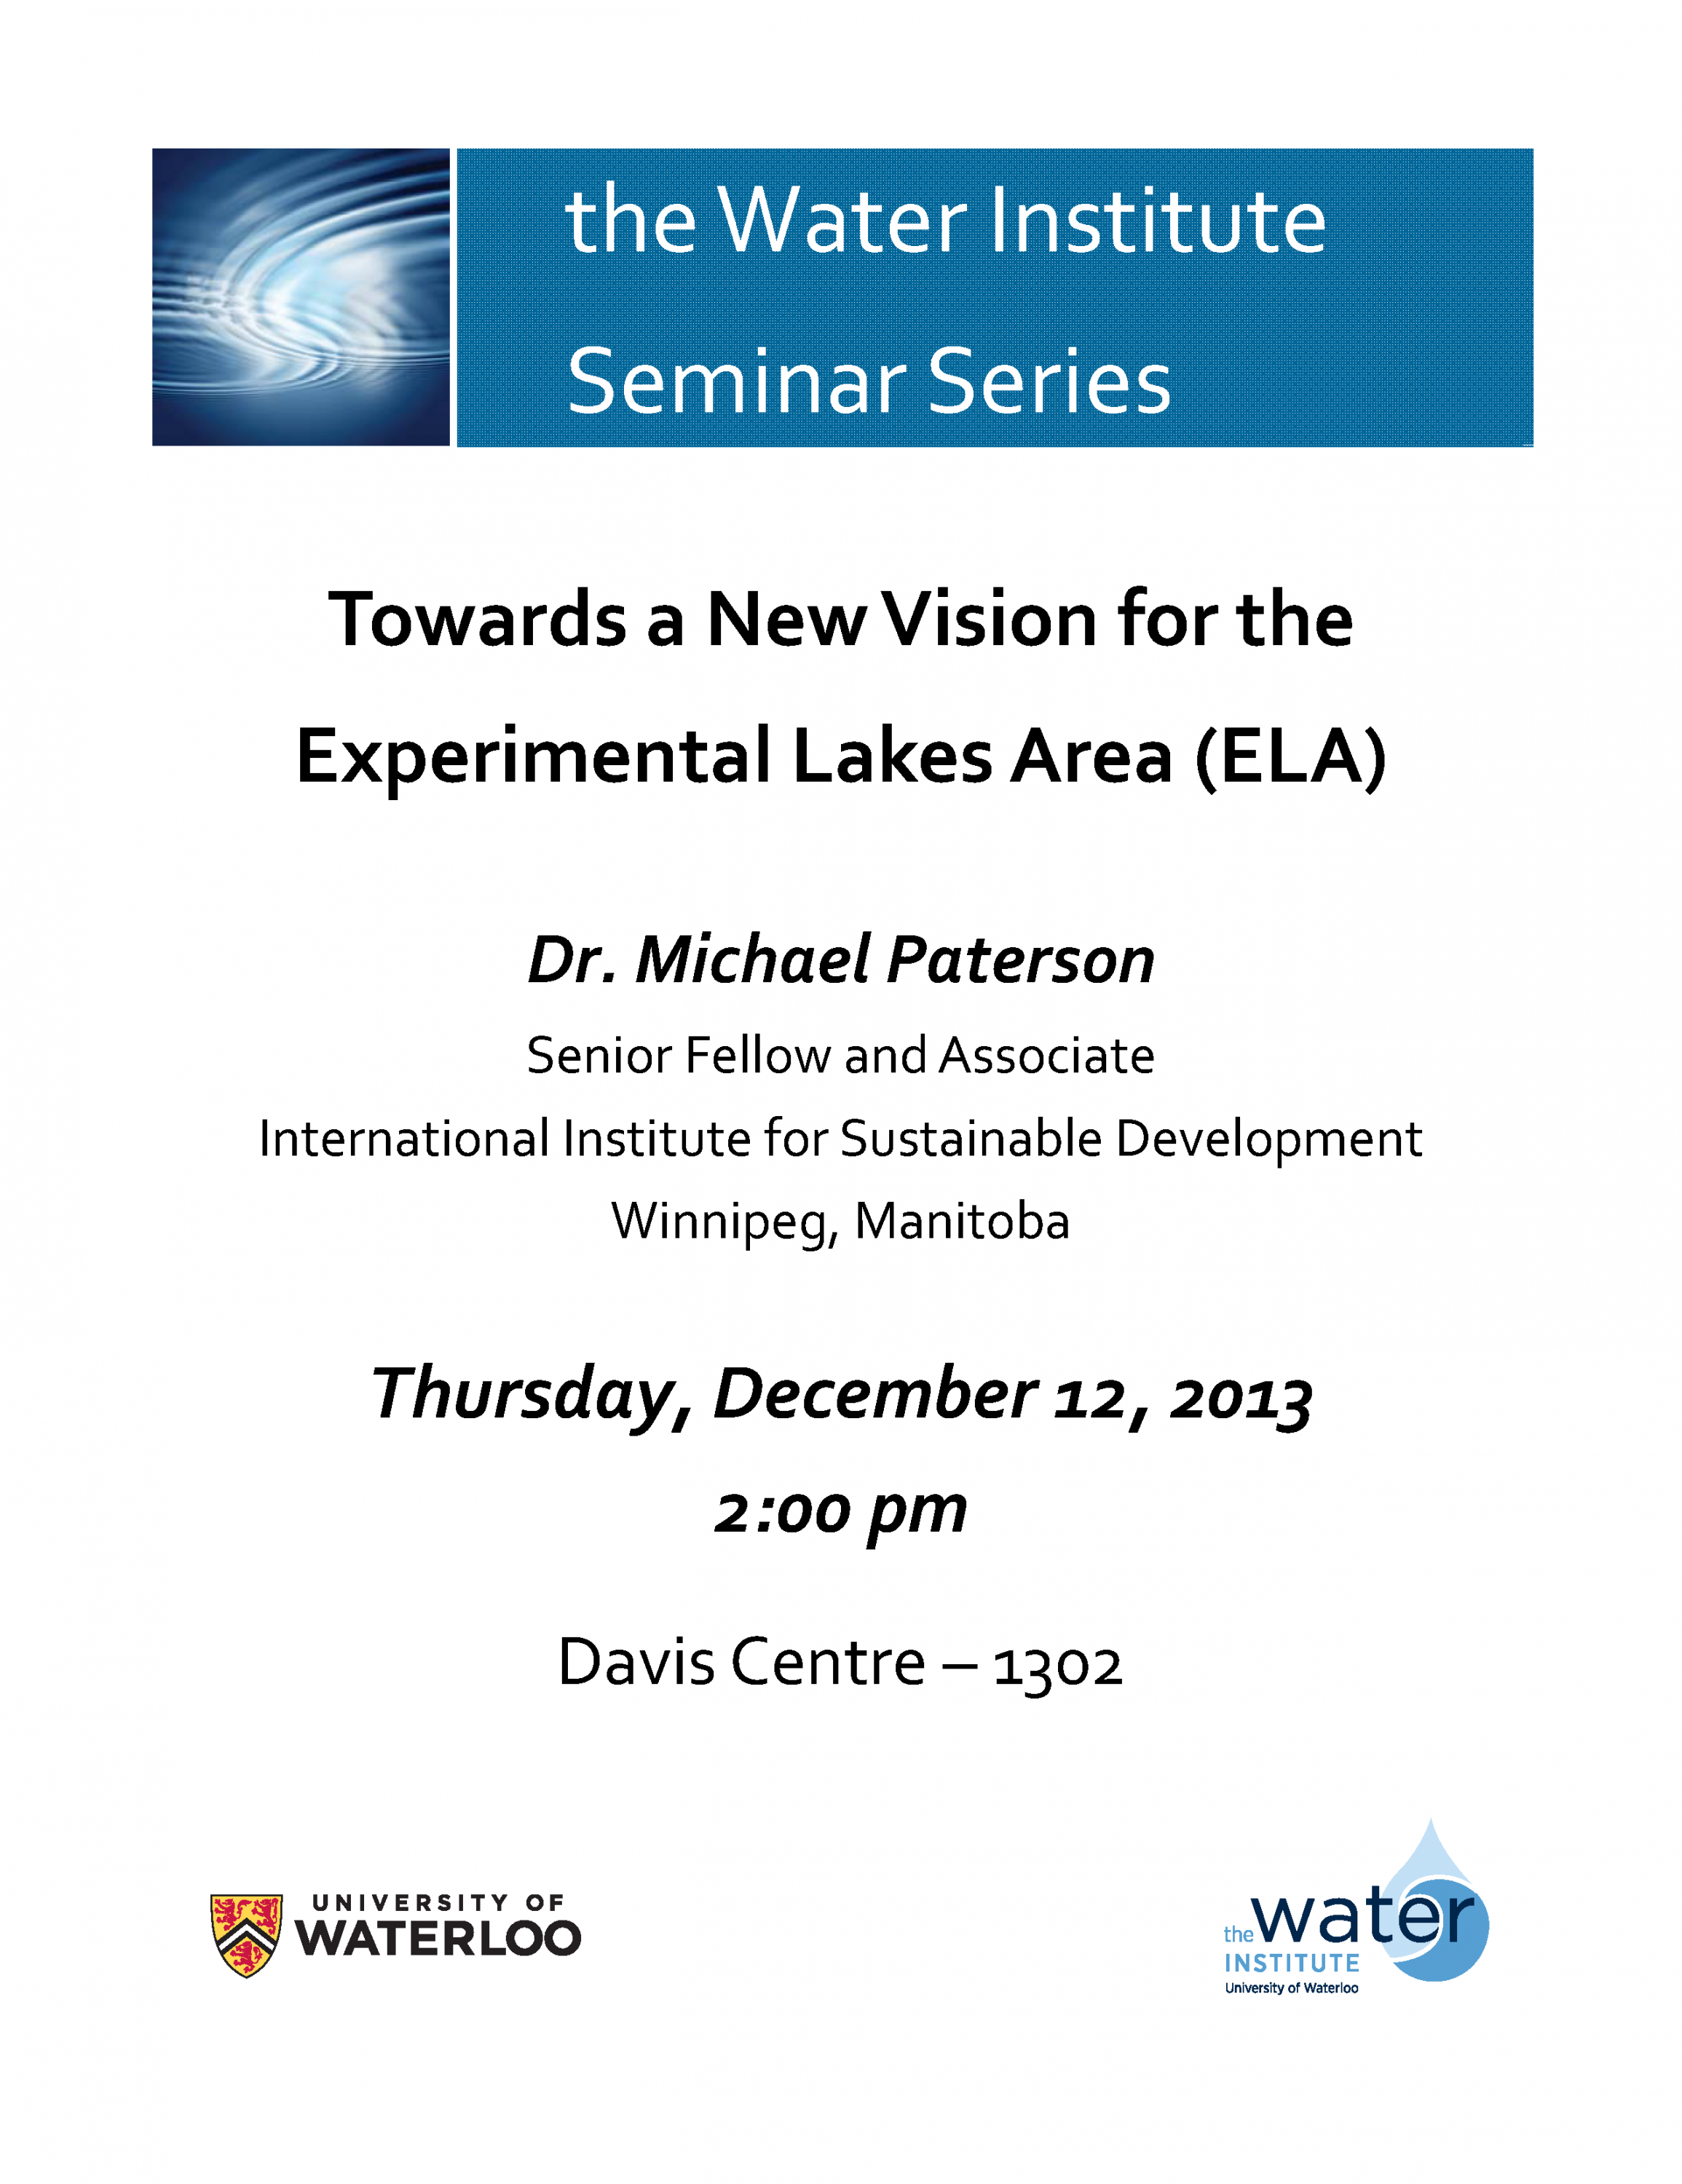 Towards a New Vision for the Experimental Lakes Area (ELA) poster